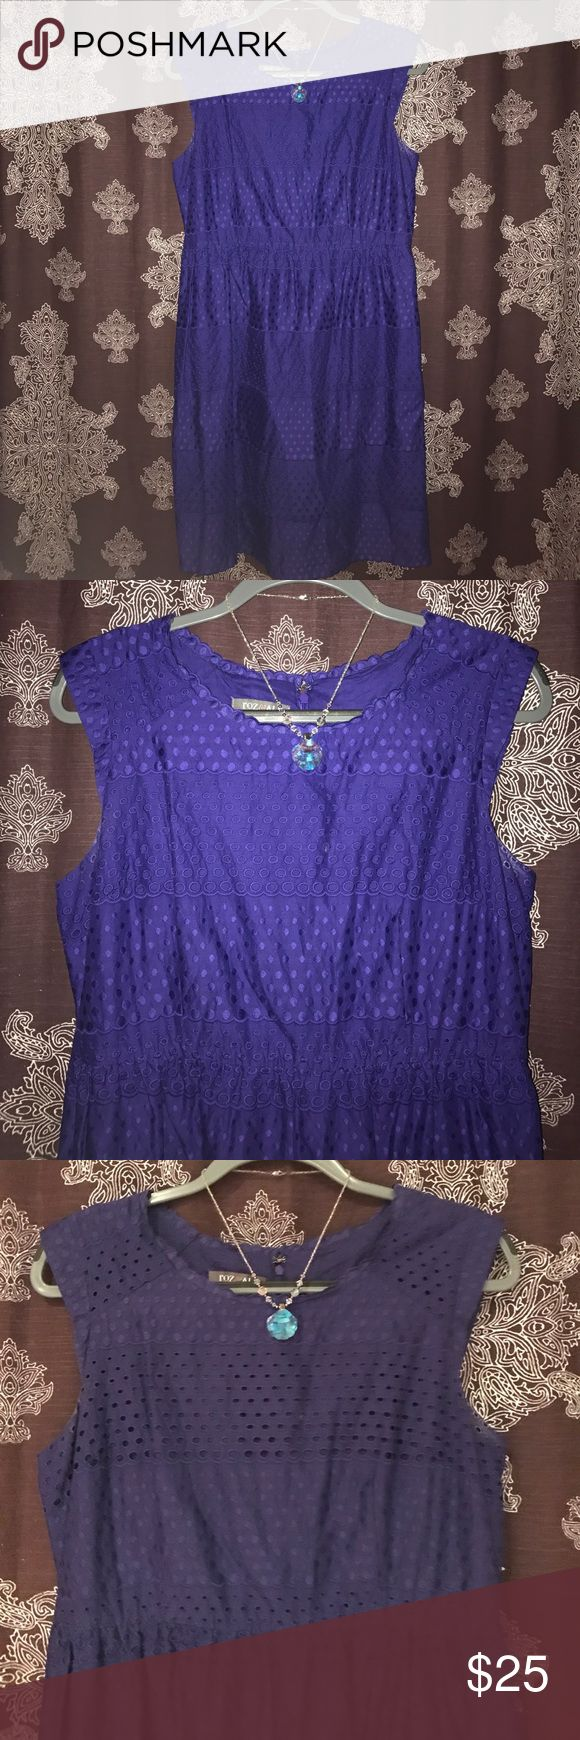 Roz&Ali Eyelet Purple Scalloped Hem Dress Size 14 Beautiful purple Eyelet dress in perfect condition. Great for a nice party, graduation, or a special event/occasion. Size 14. Scalloped hem Detail. Lovely with a statement necklace and nude heels! 💜 Roz & Ali Dresses Midi